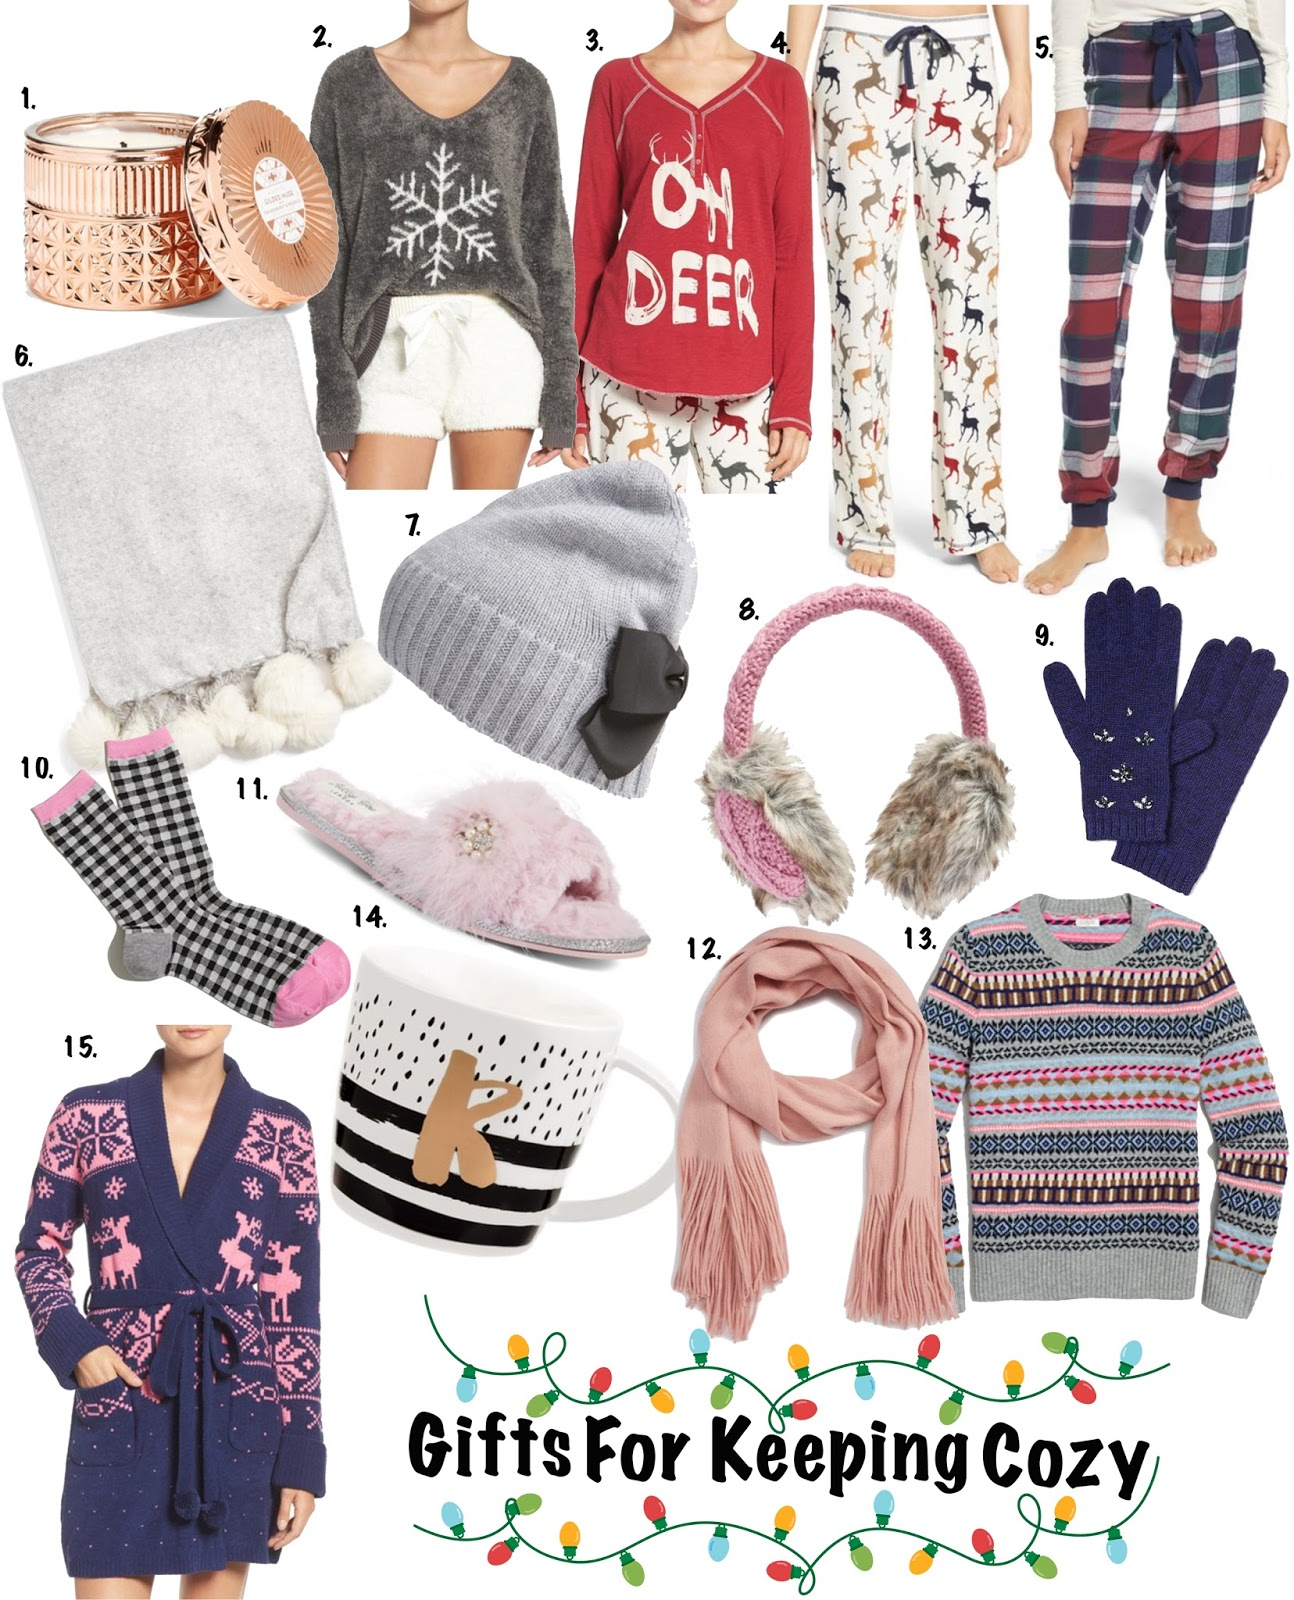 A Cozy Gift Guide - Something Delightful Blog